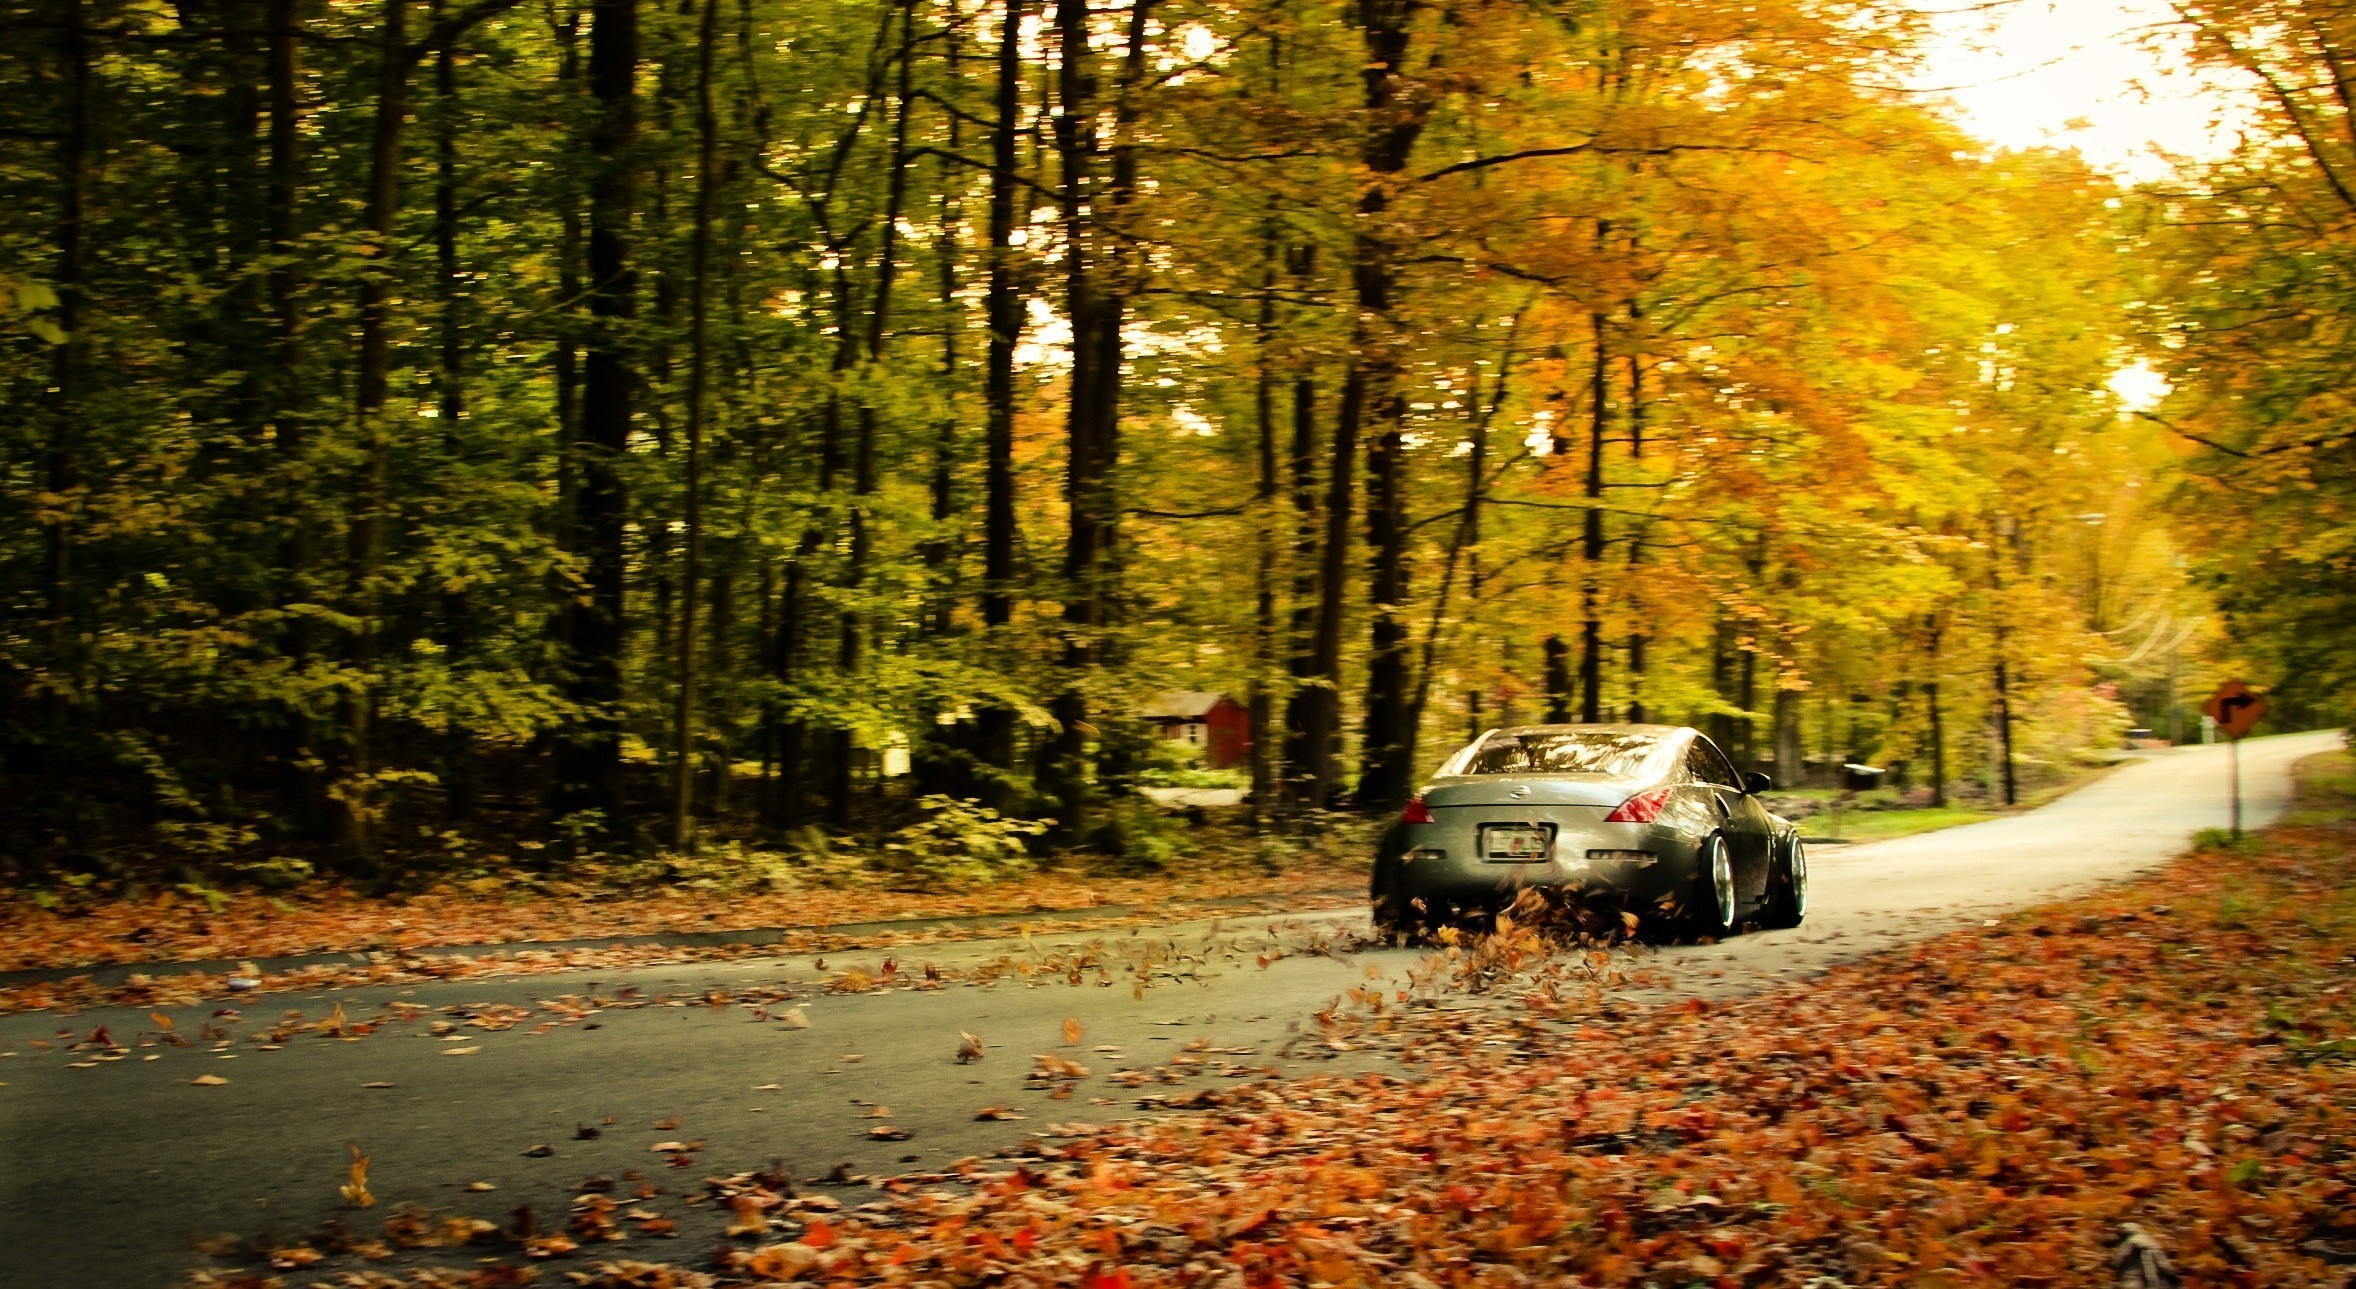 2356x1289 Nissan 350z fallen leaves wallpaper